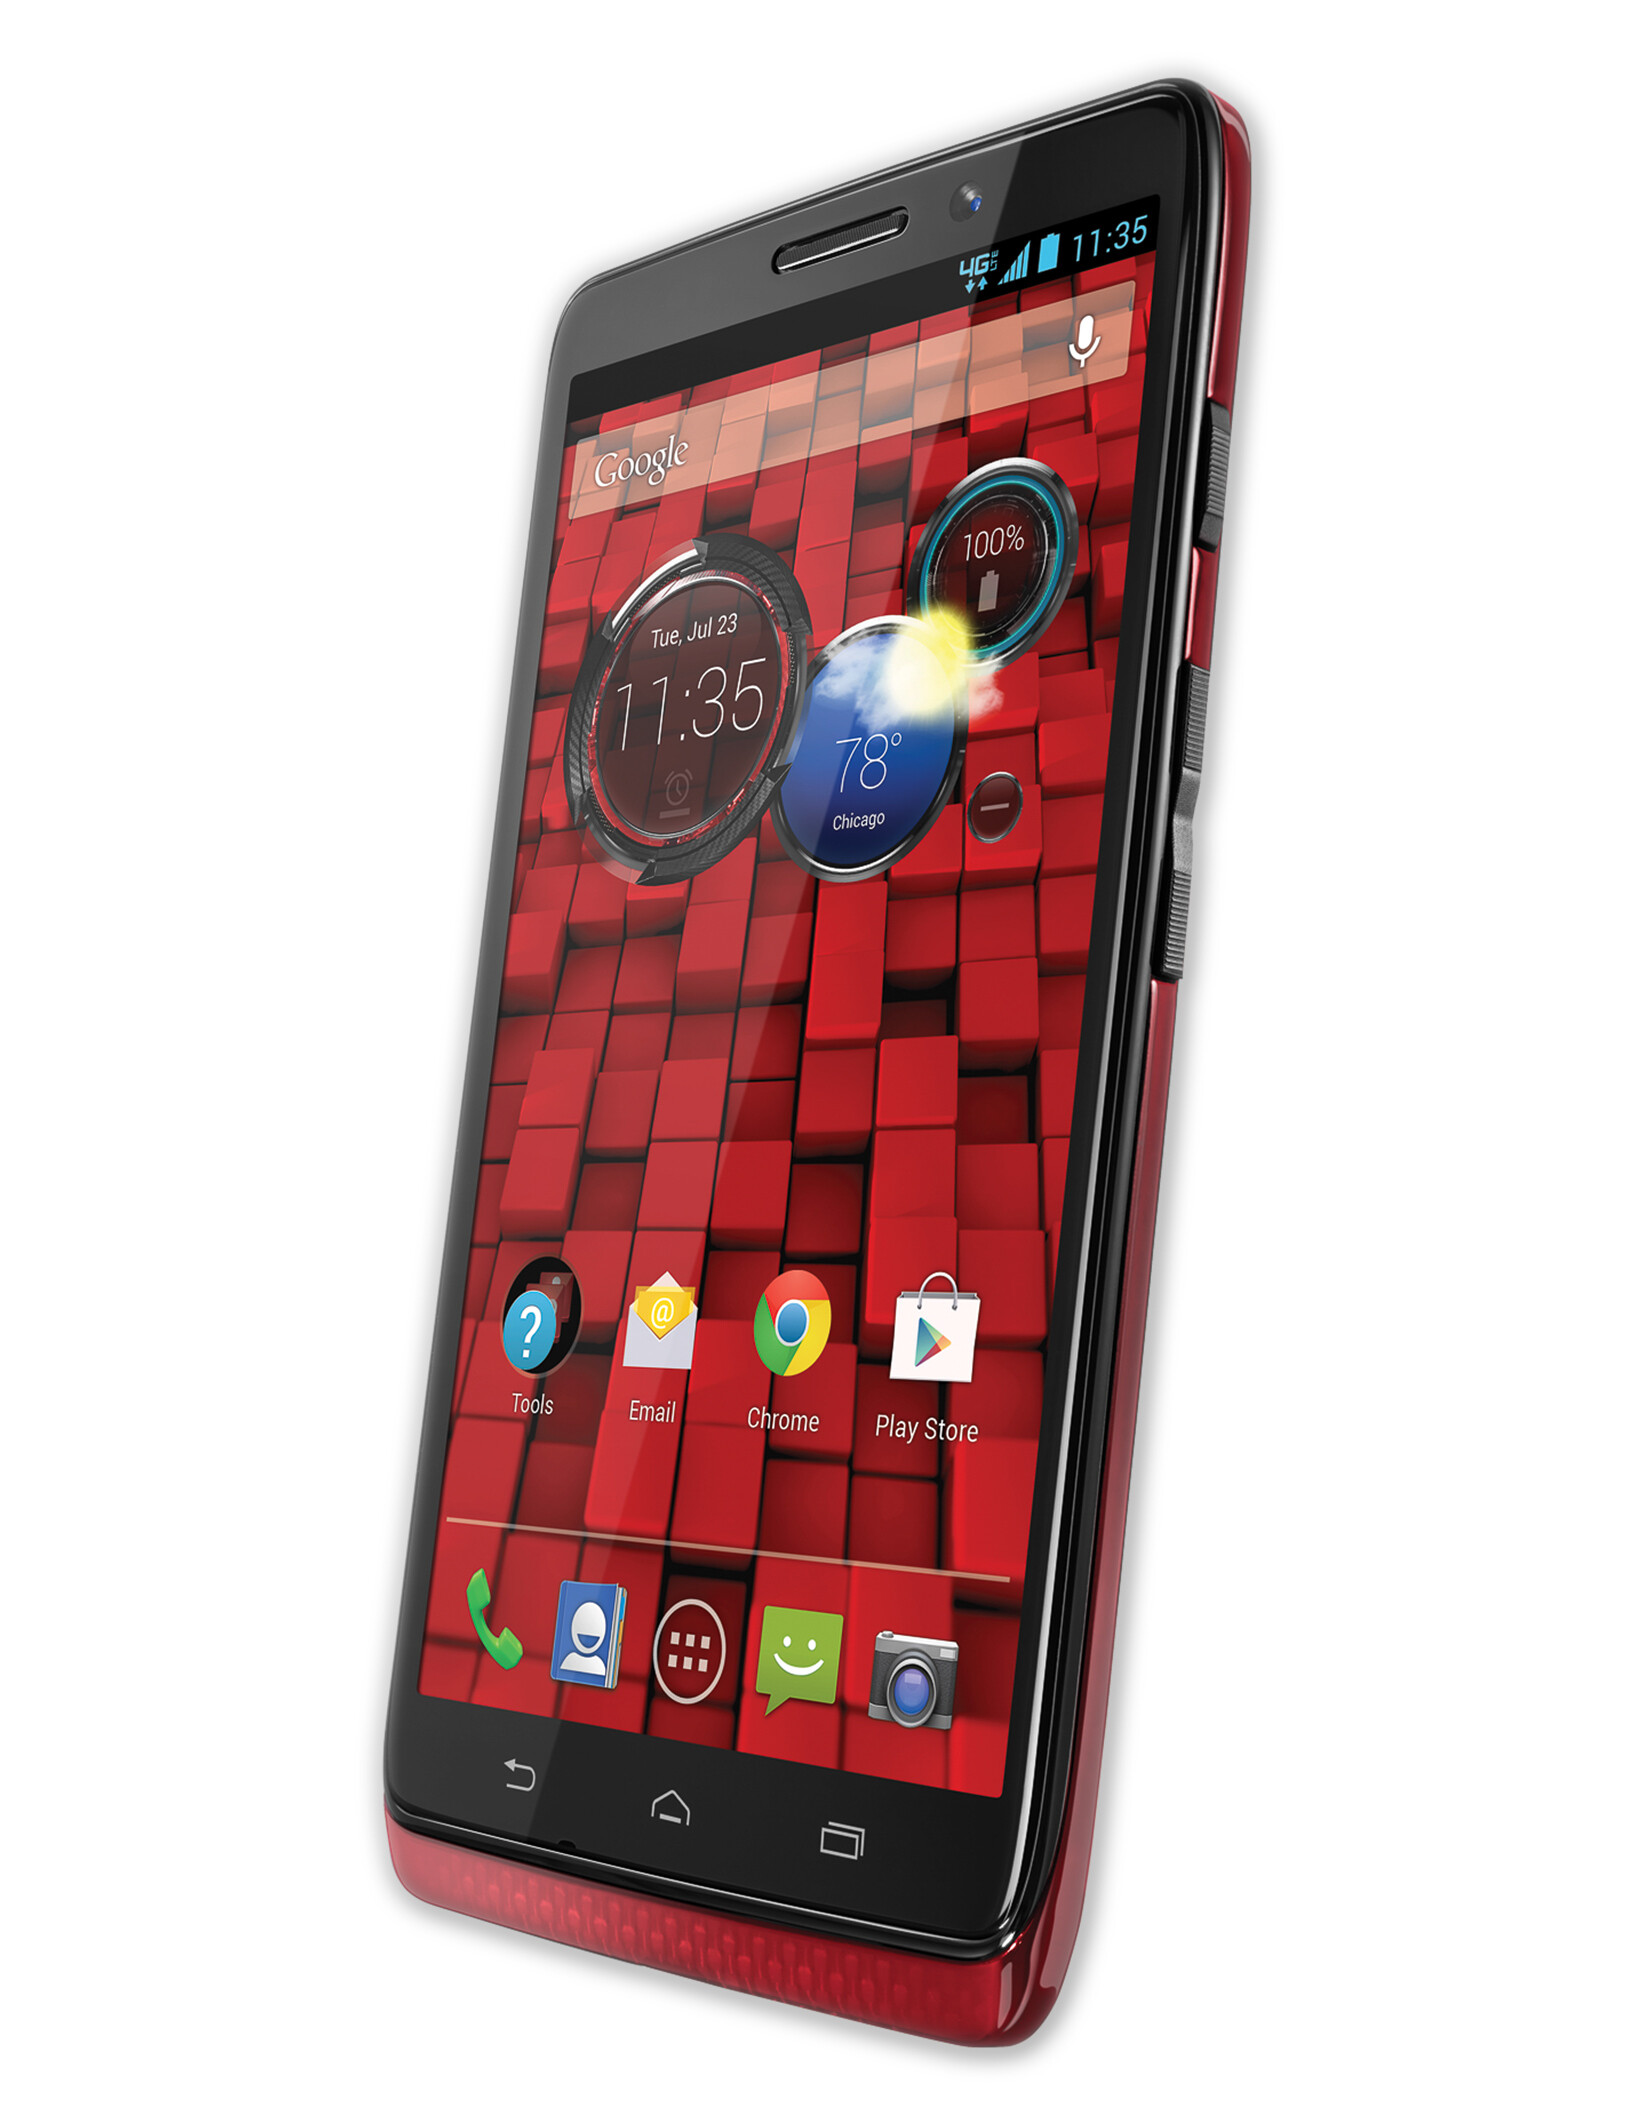 http://i-cdn.phonearena.com/images/phones/42065-xlarge/Motorola-DROID-Ultra.jpg